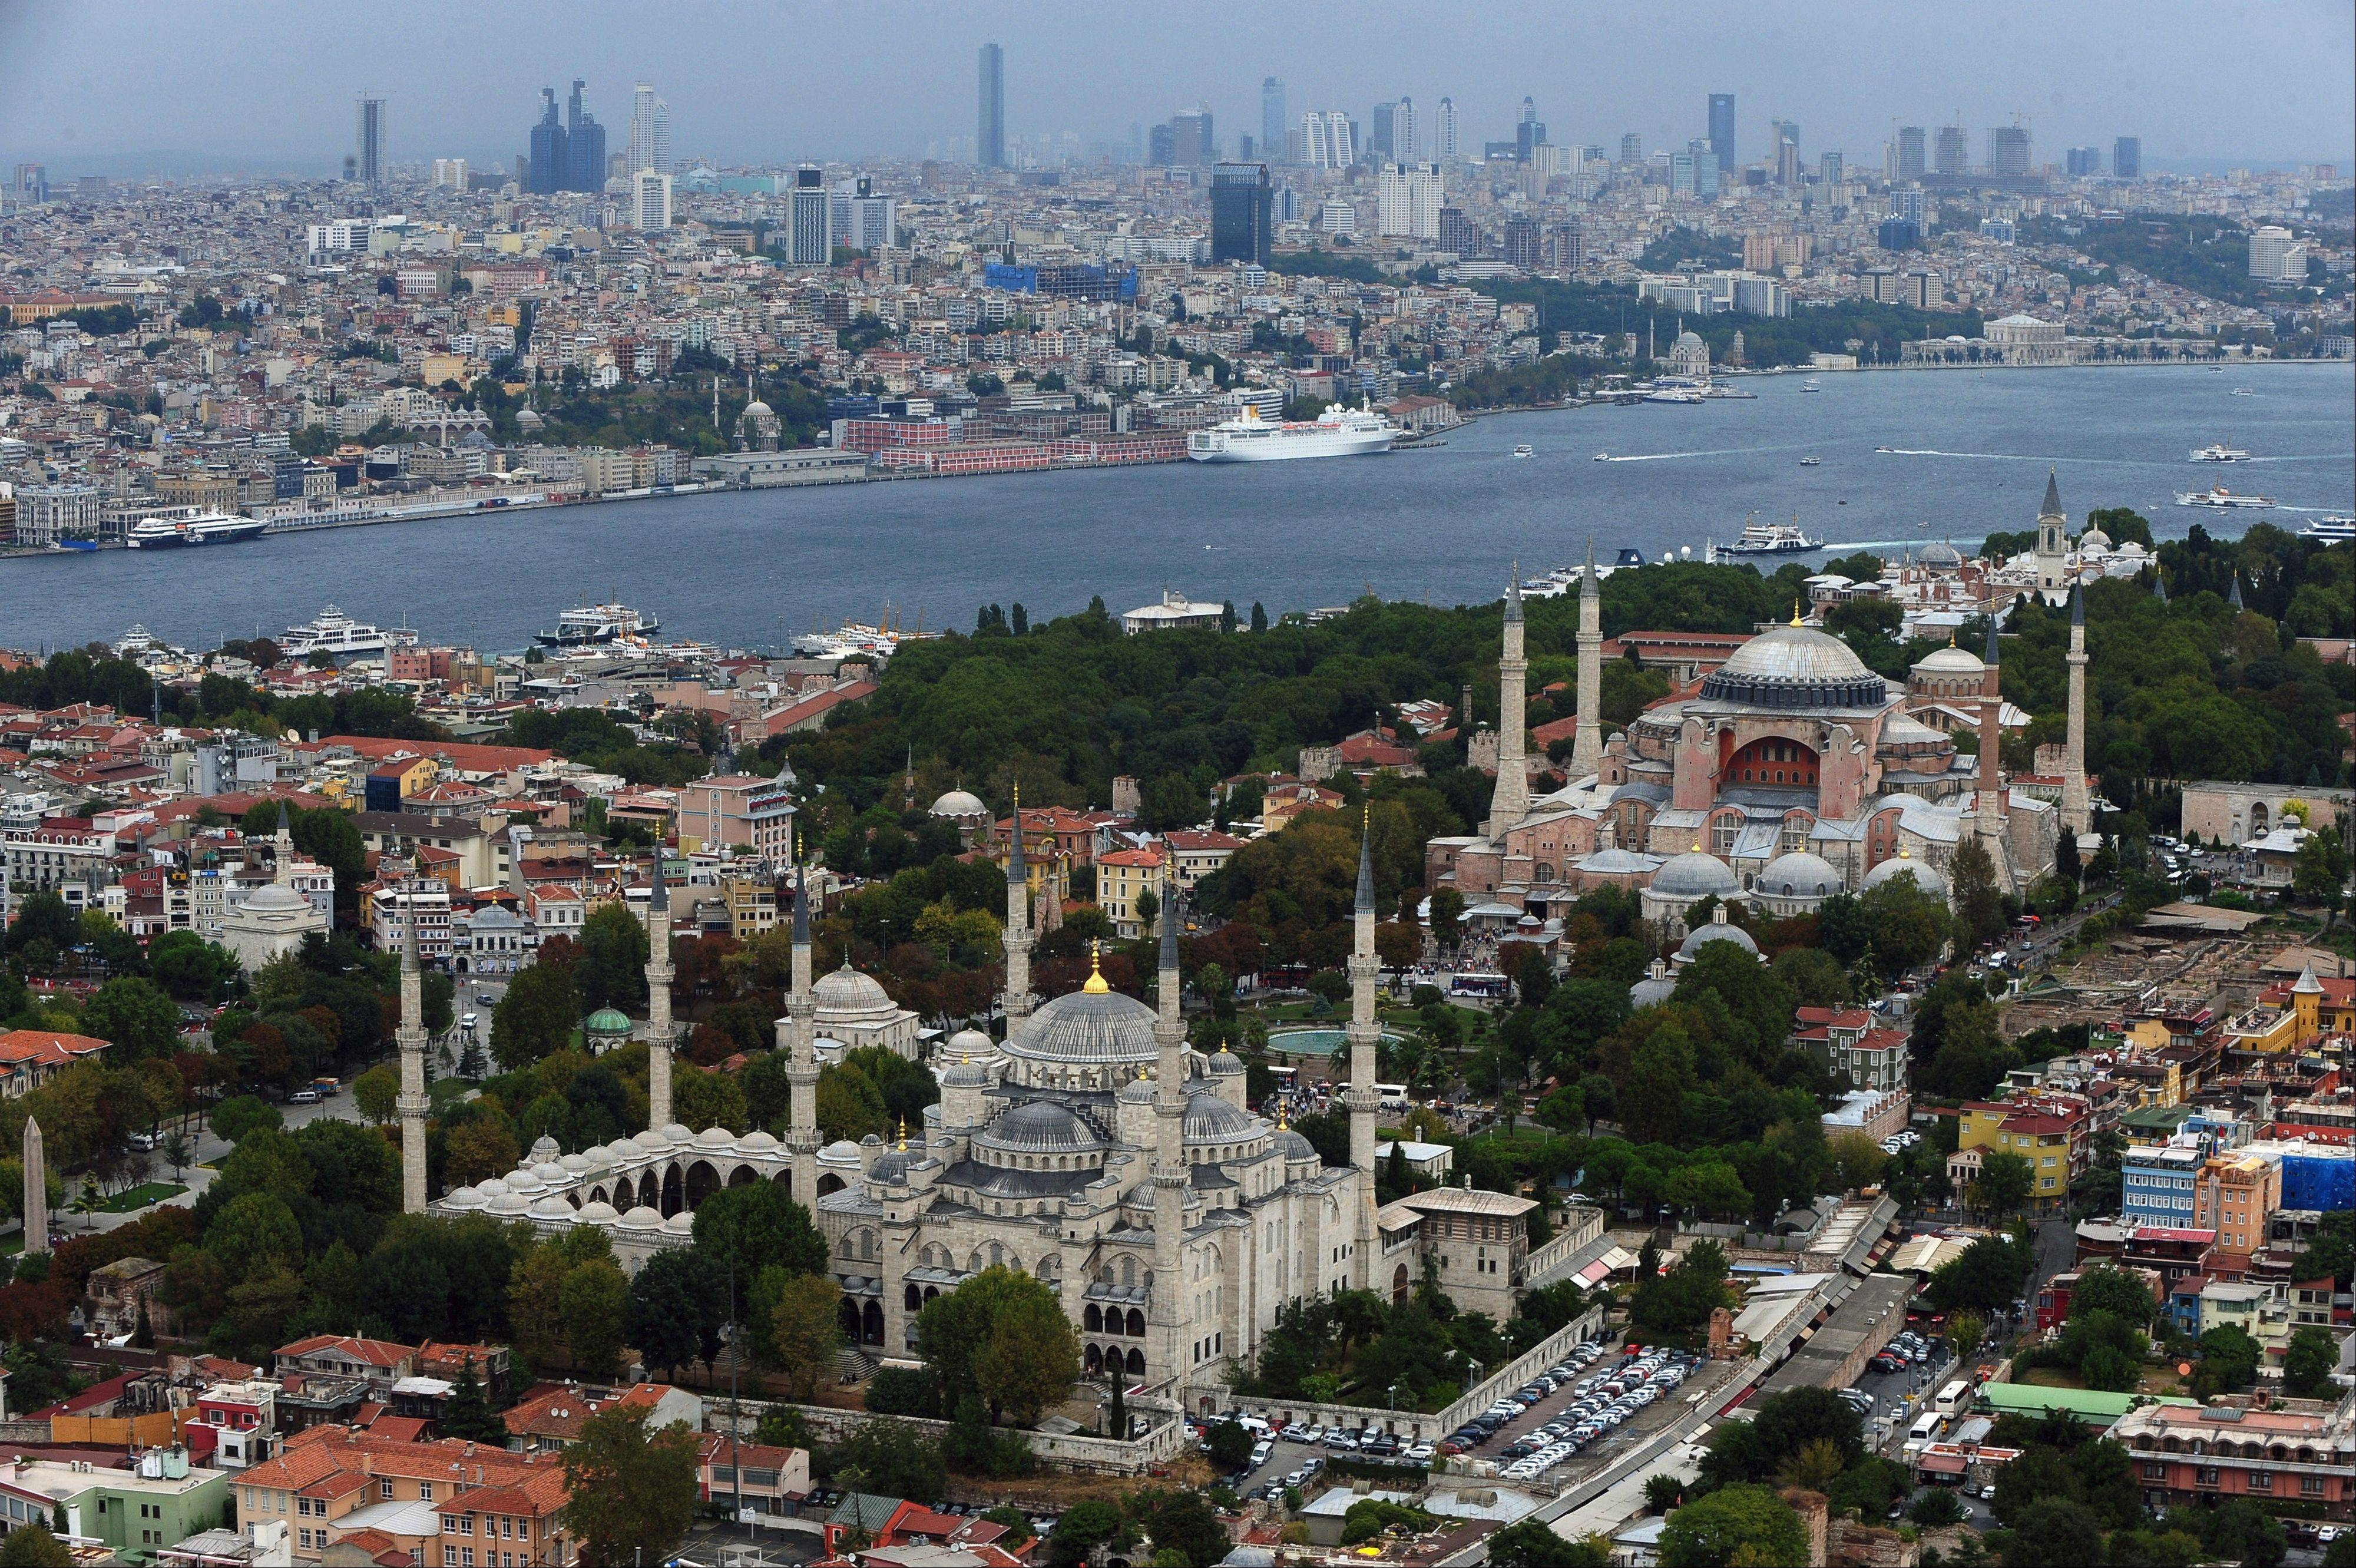 The Sultan Ahmed Mosque, better known as the Blue Mosque, left, and Hagia Sophia in the historic Sultanahmet district in Istanbul, Turkey, are popular tourist destinations.